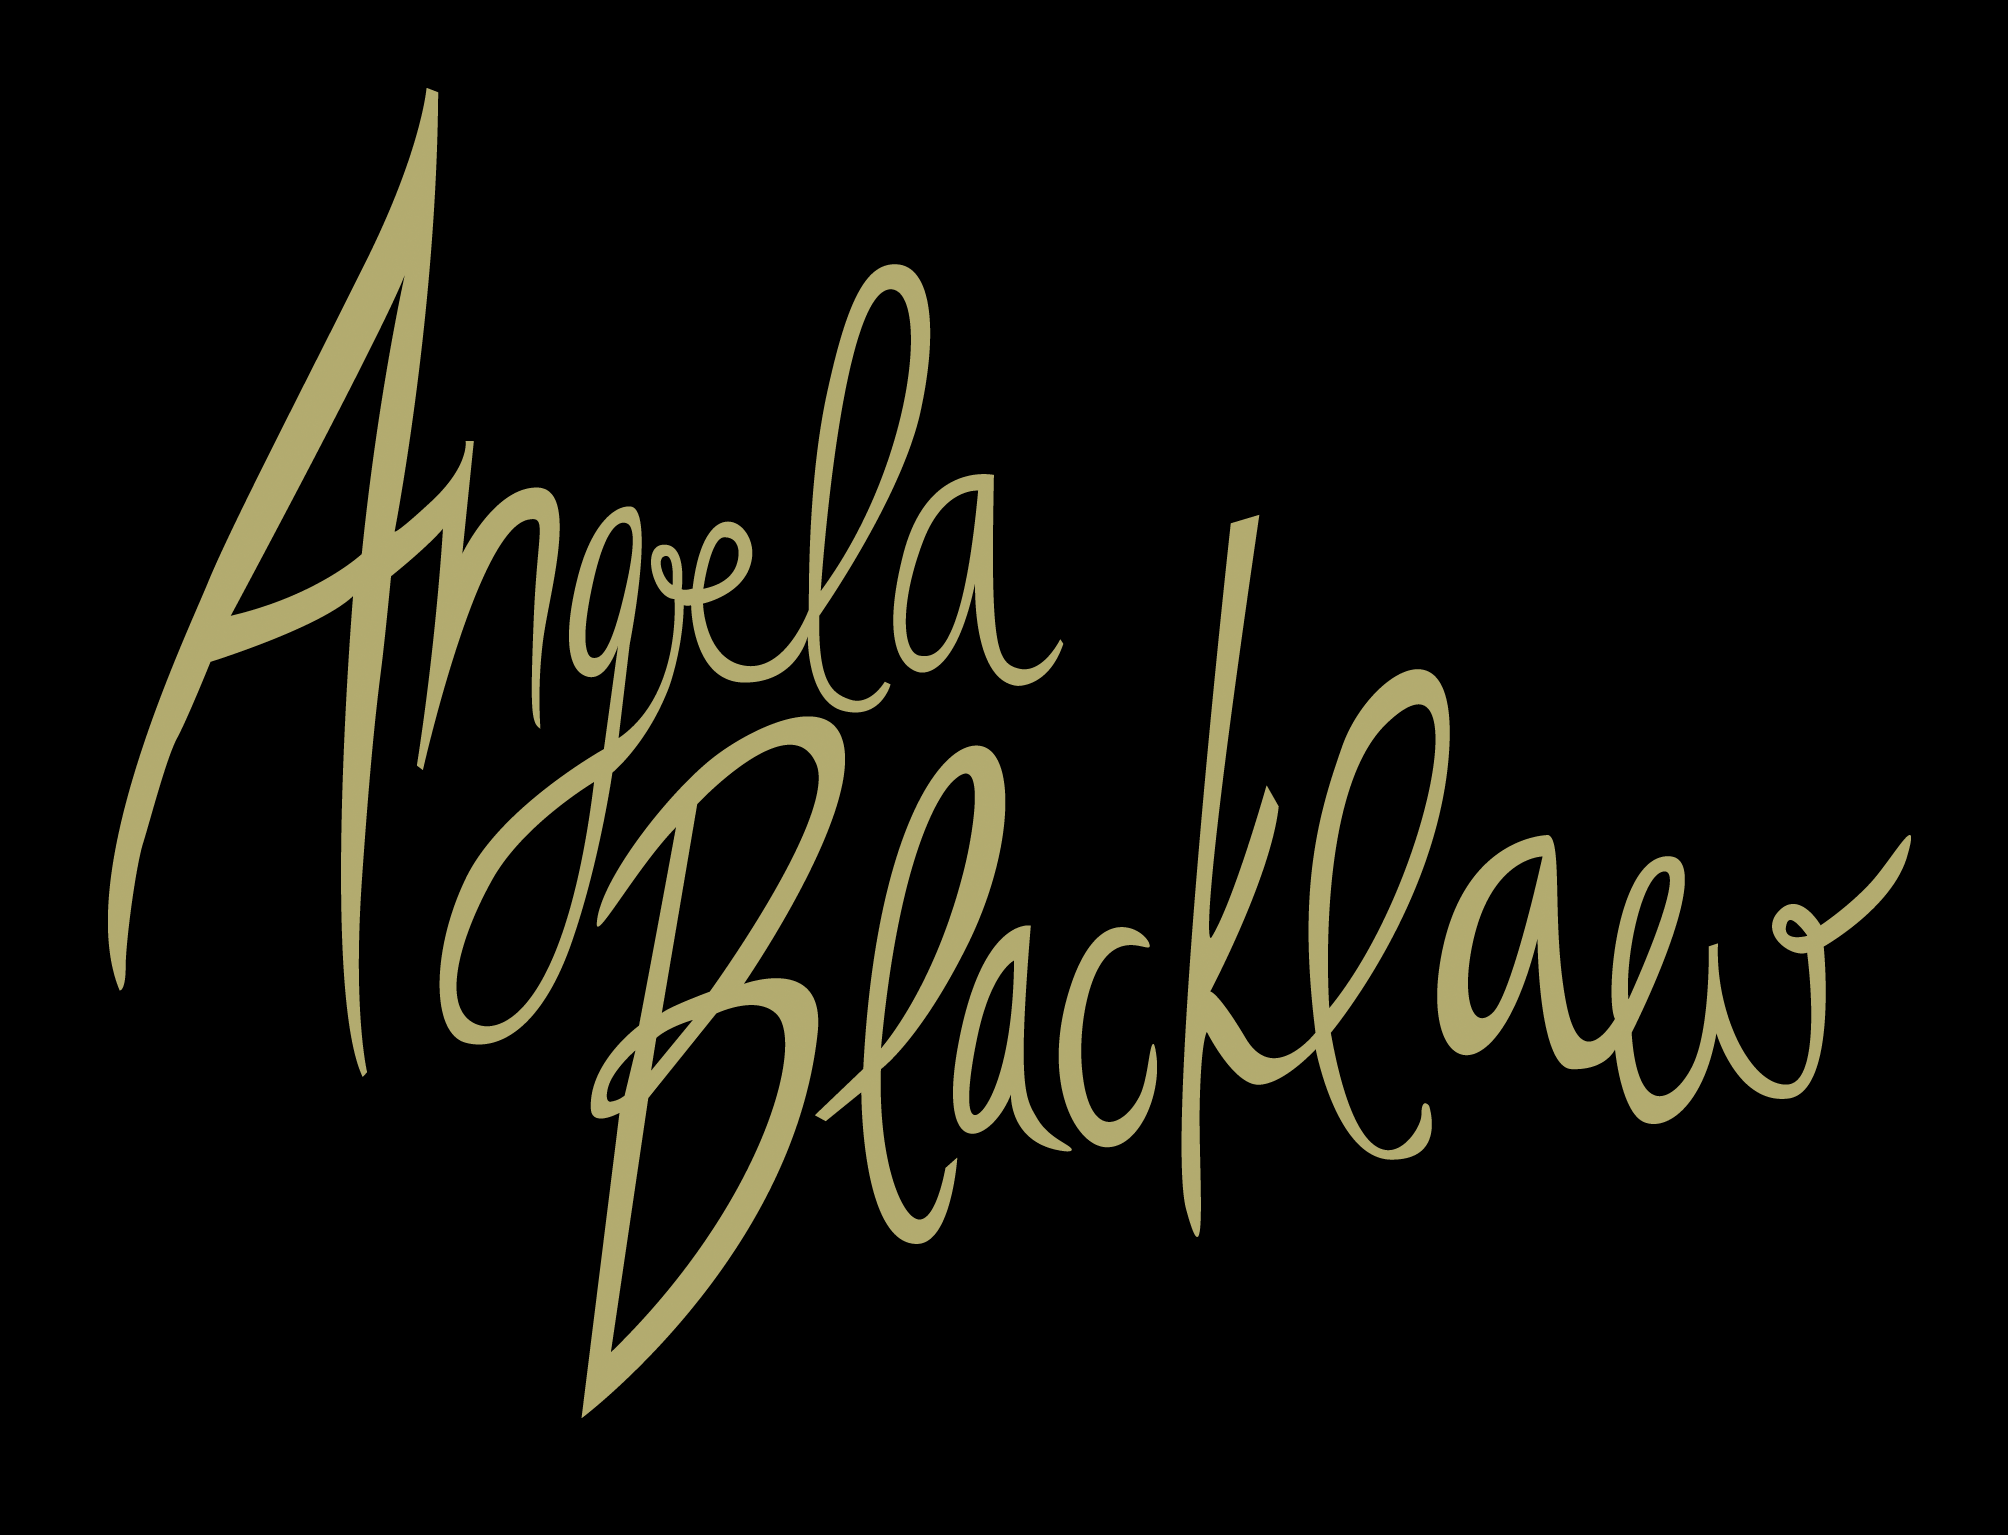 logoangelablacklaw160x120mm_300dpi_RGB_gold_blackbackground